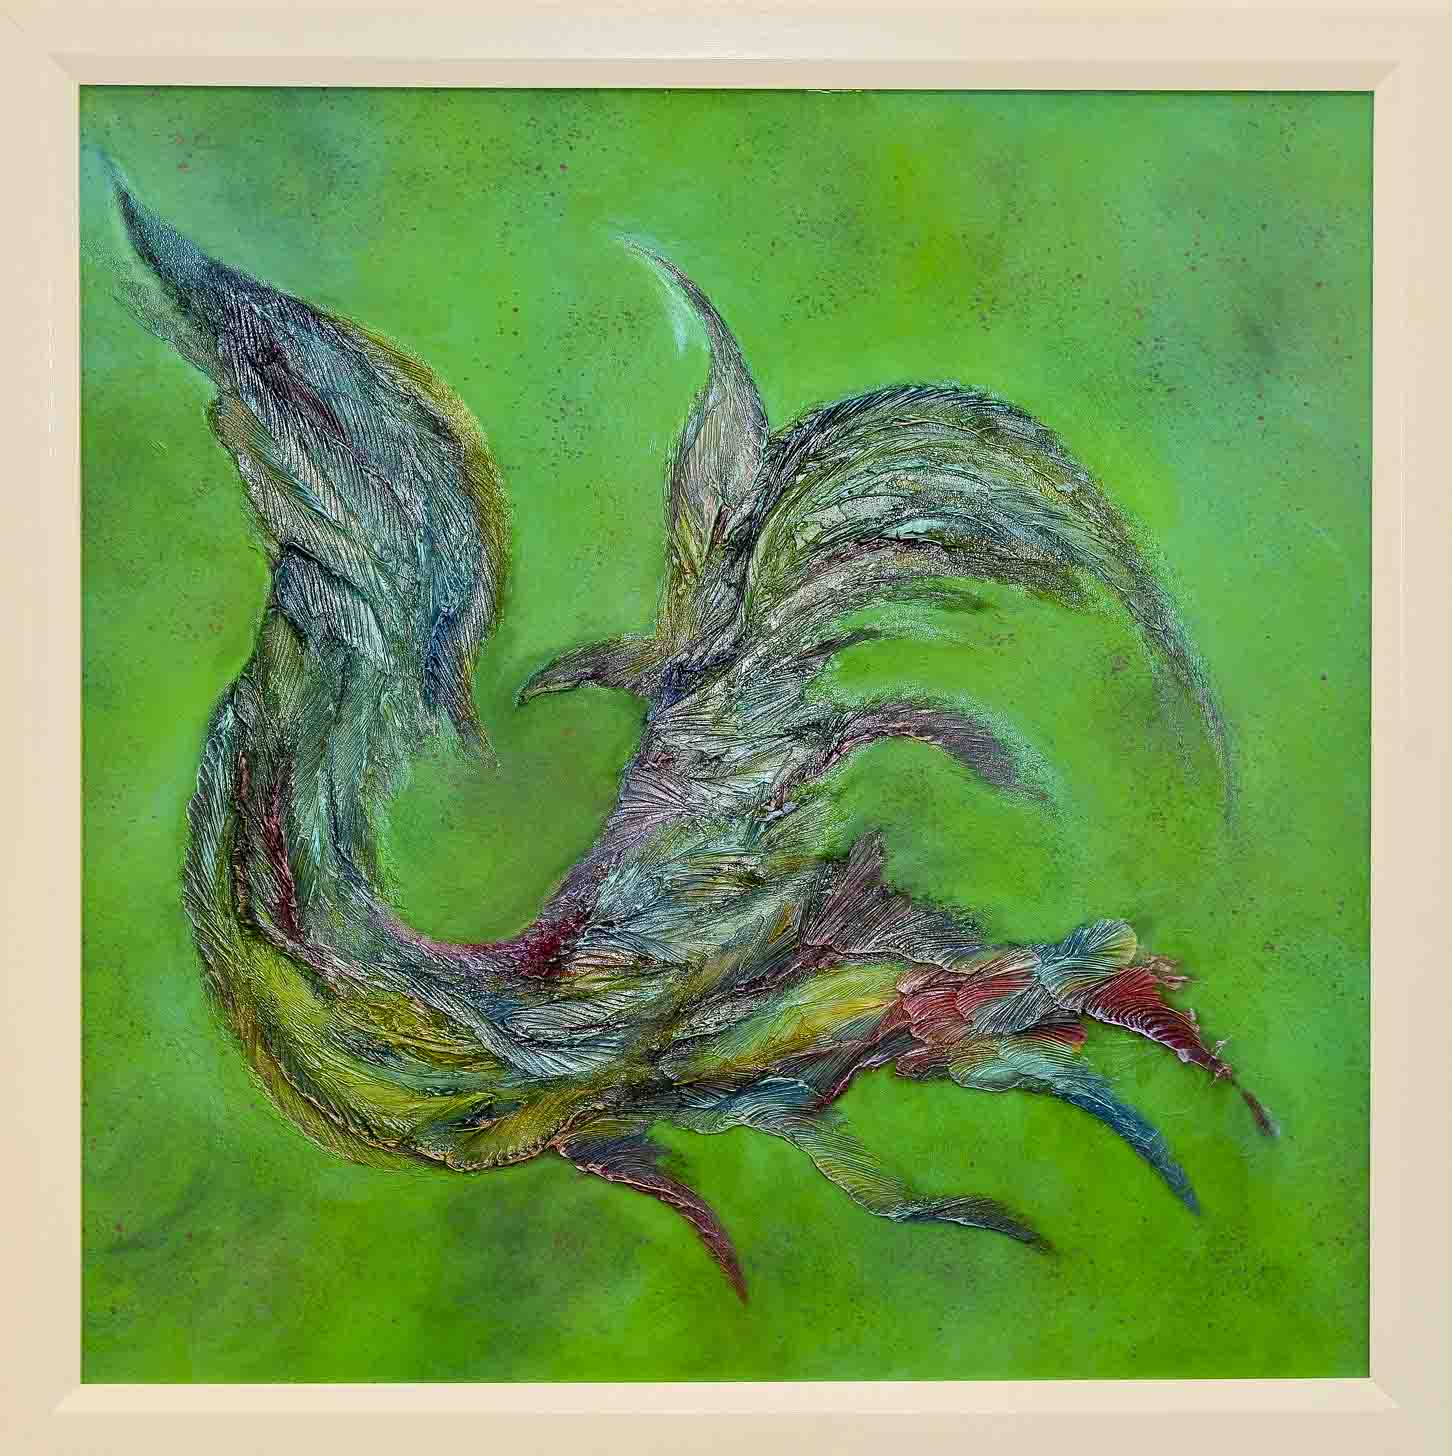 Phantasy Bird 135x135cm